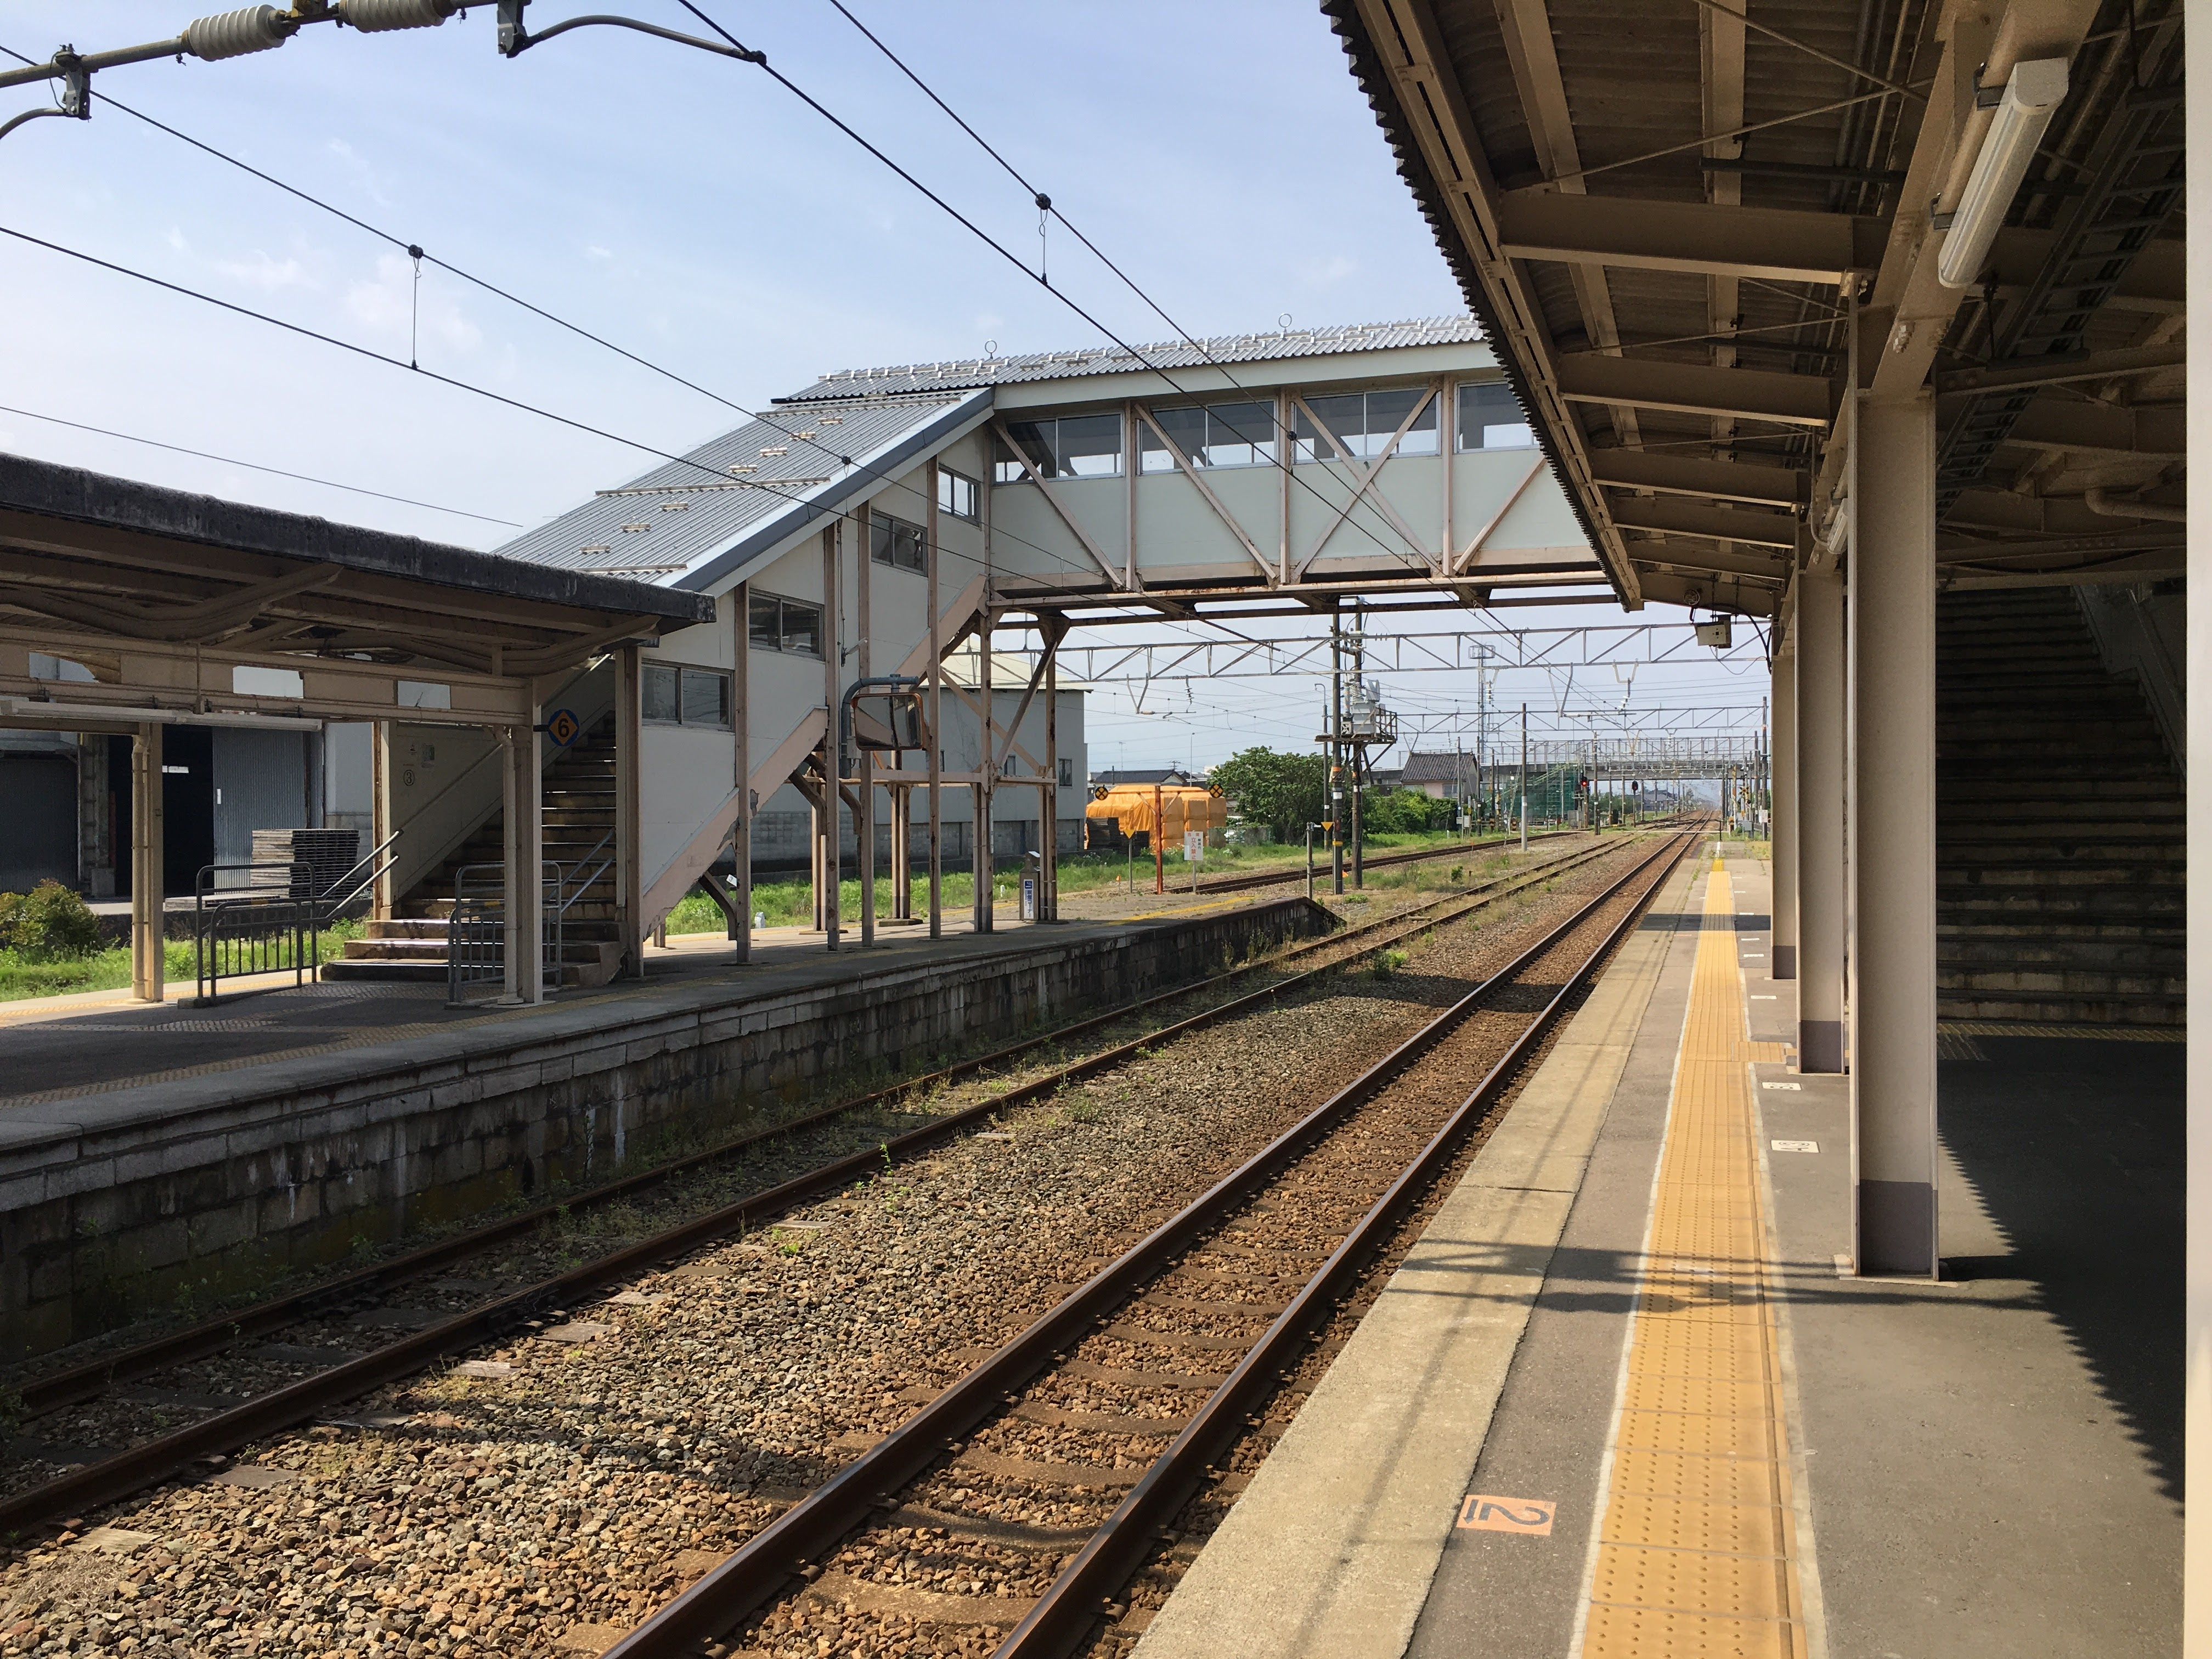 https://upload.wikimedia.org/wikipedia/commons/8/8f/Fukuoka_station%289%29.jpg